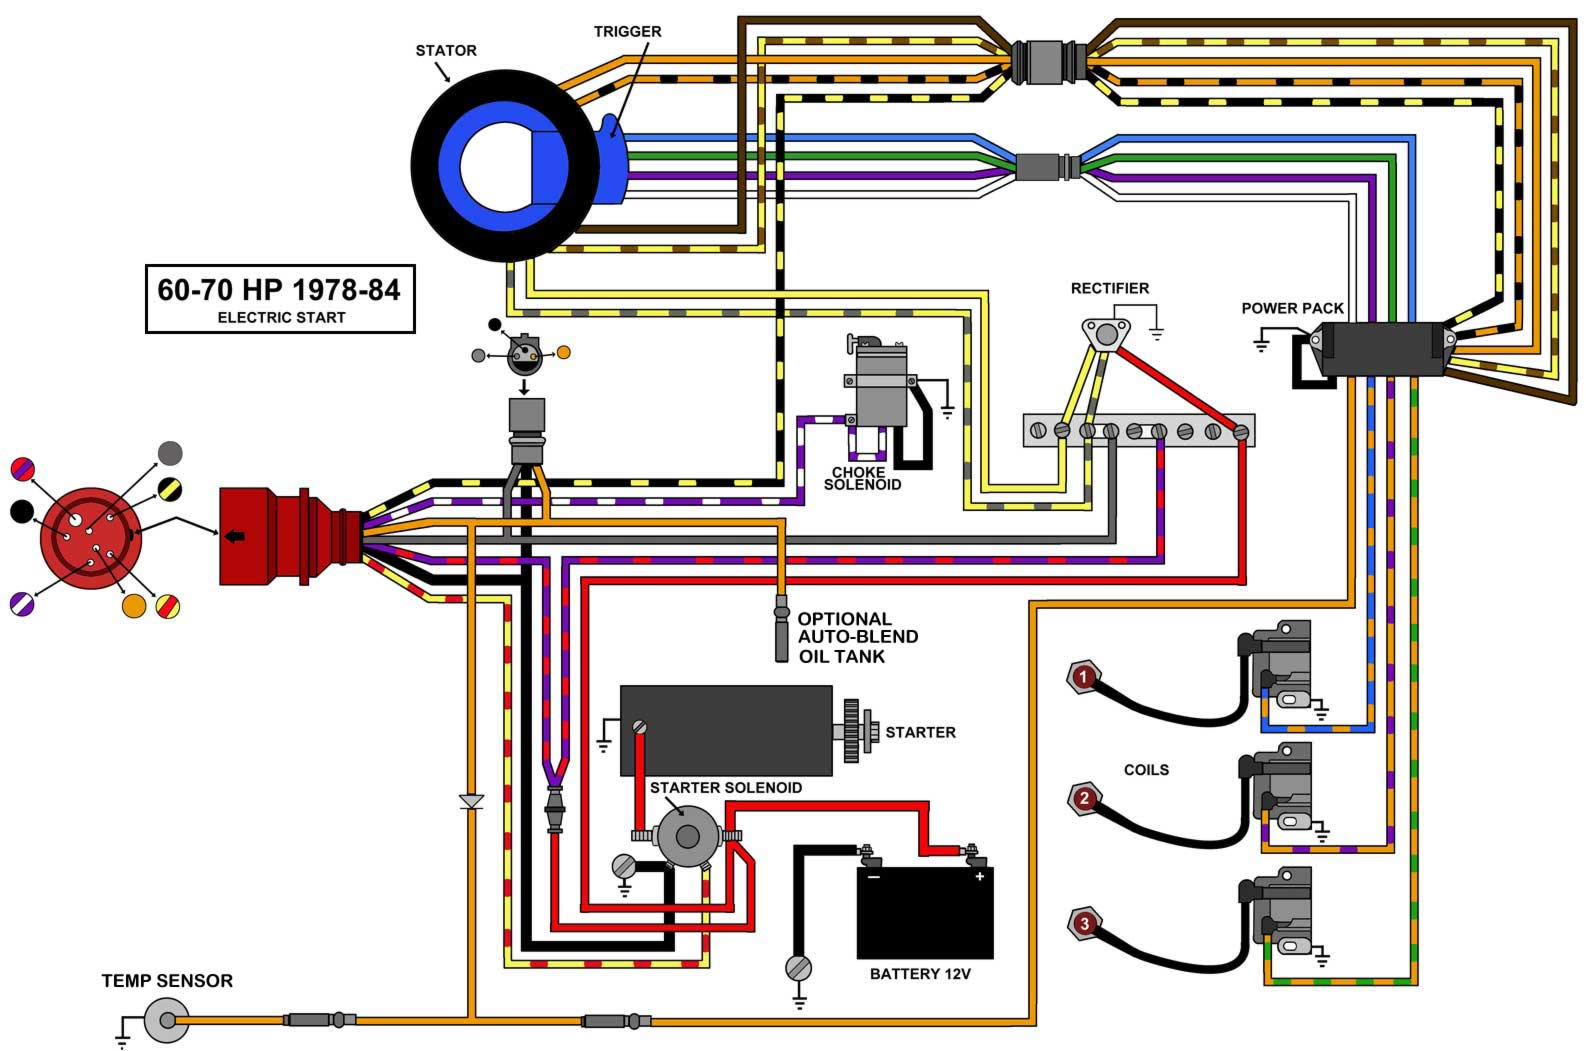 johnson wiring diagram wiring diagram data oreo Mazda Wiring Schematics evinrude johnson outboard wiring diagrams mastertech marine kitchen wiring diagram johnson wiring diagram